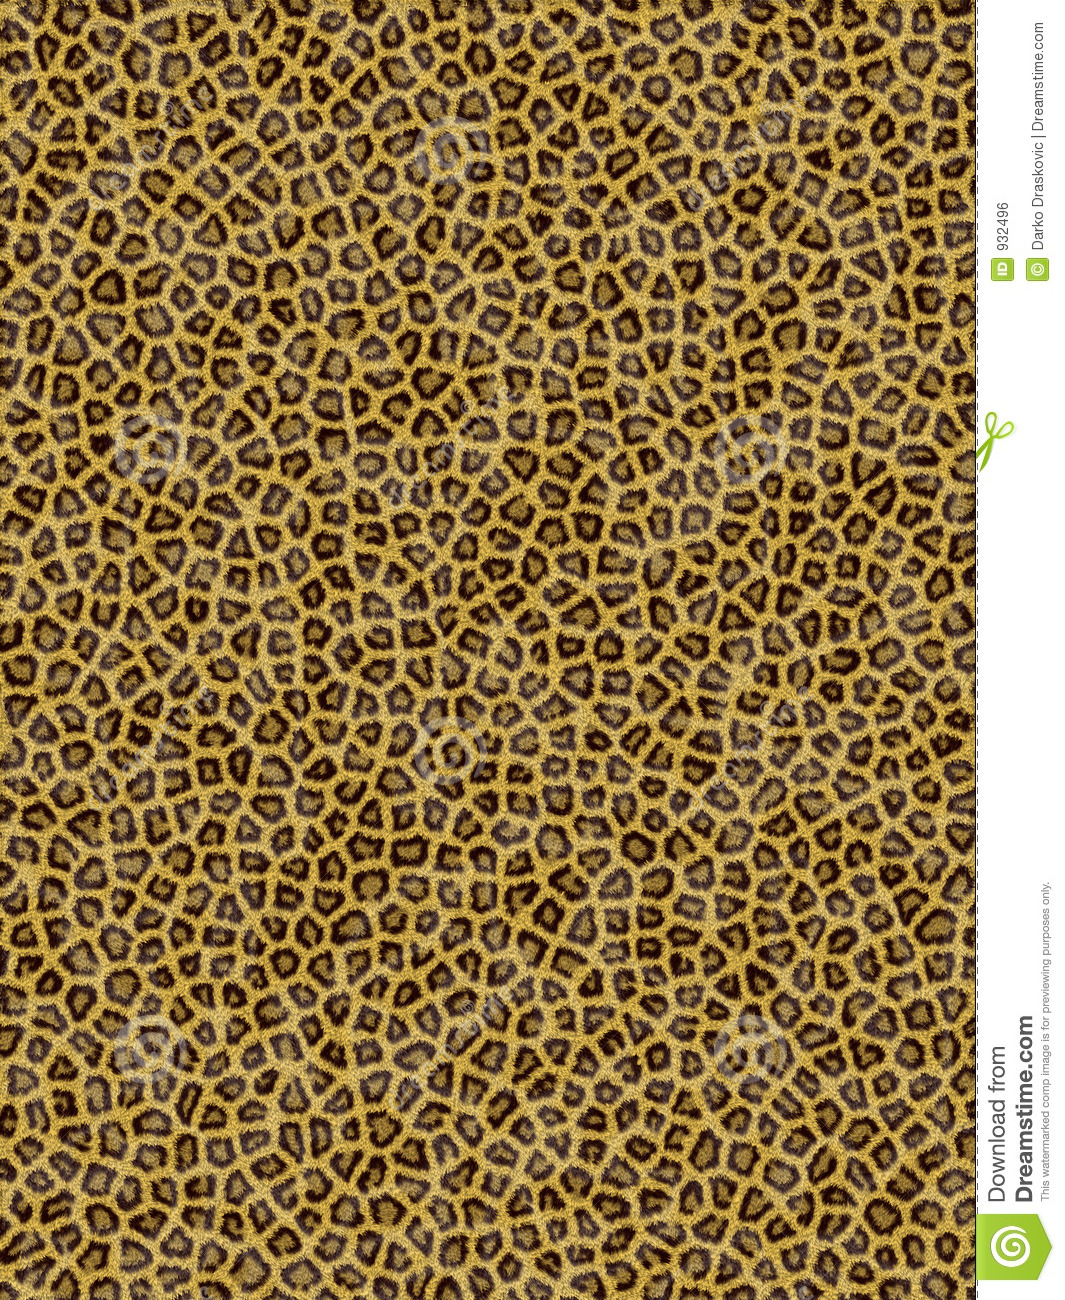 Leopard Pattern Royalty Free Stock Image Image 932496